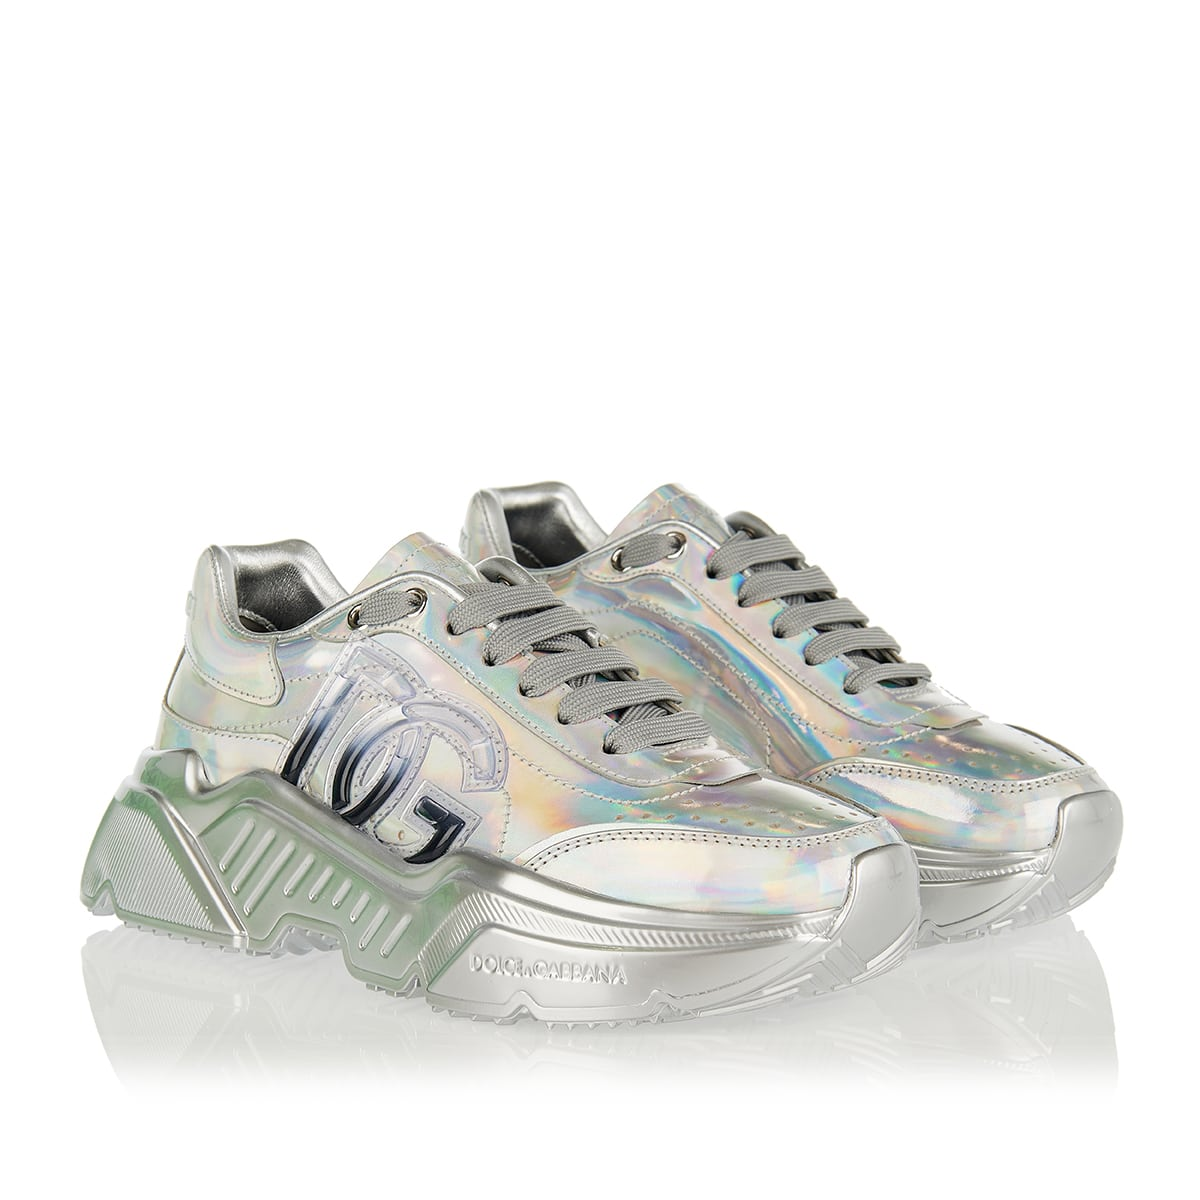 Daymaster DG metallic leather sneakers